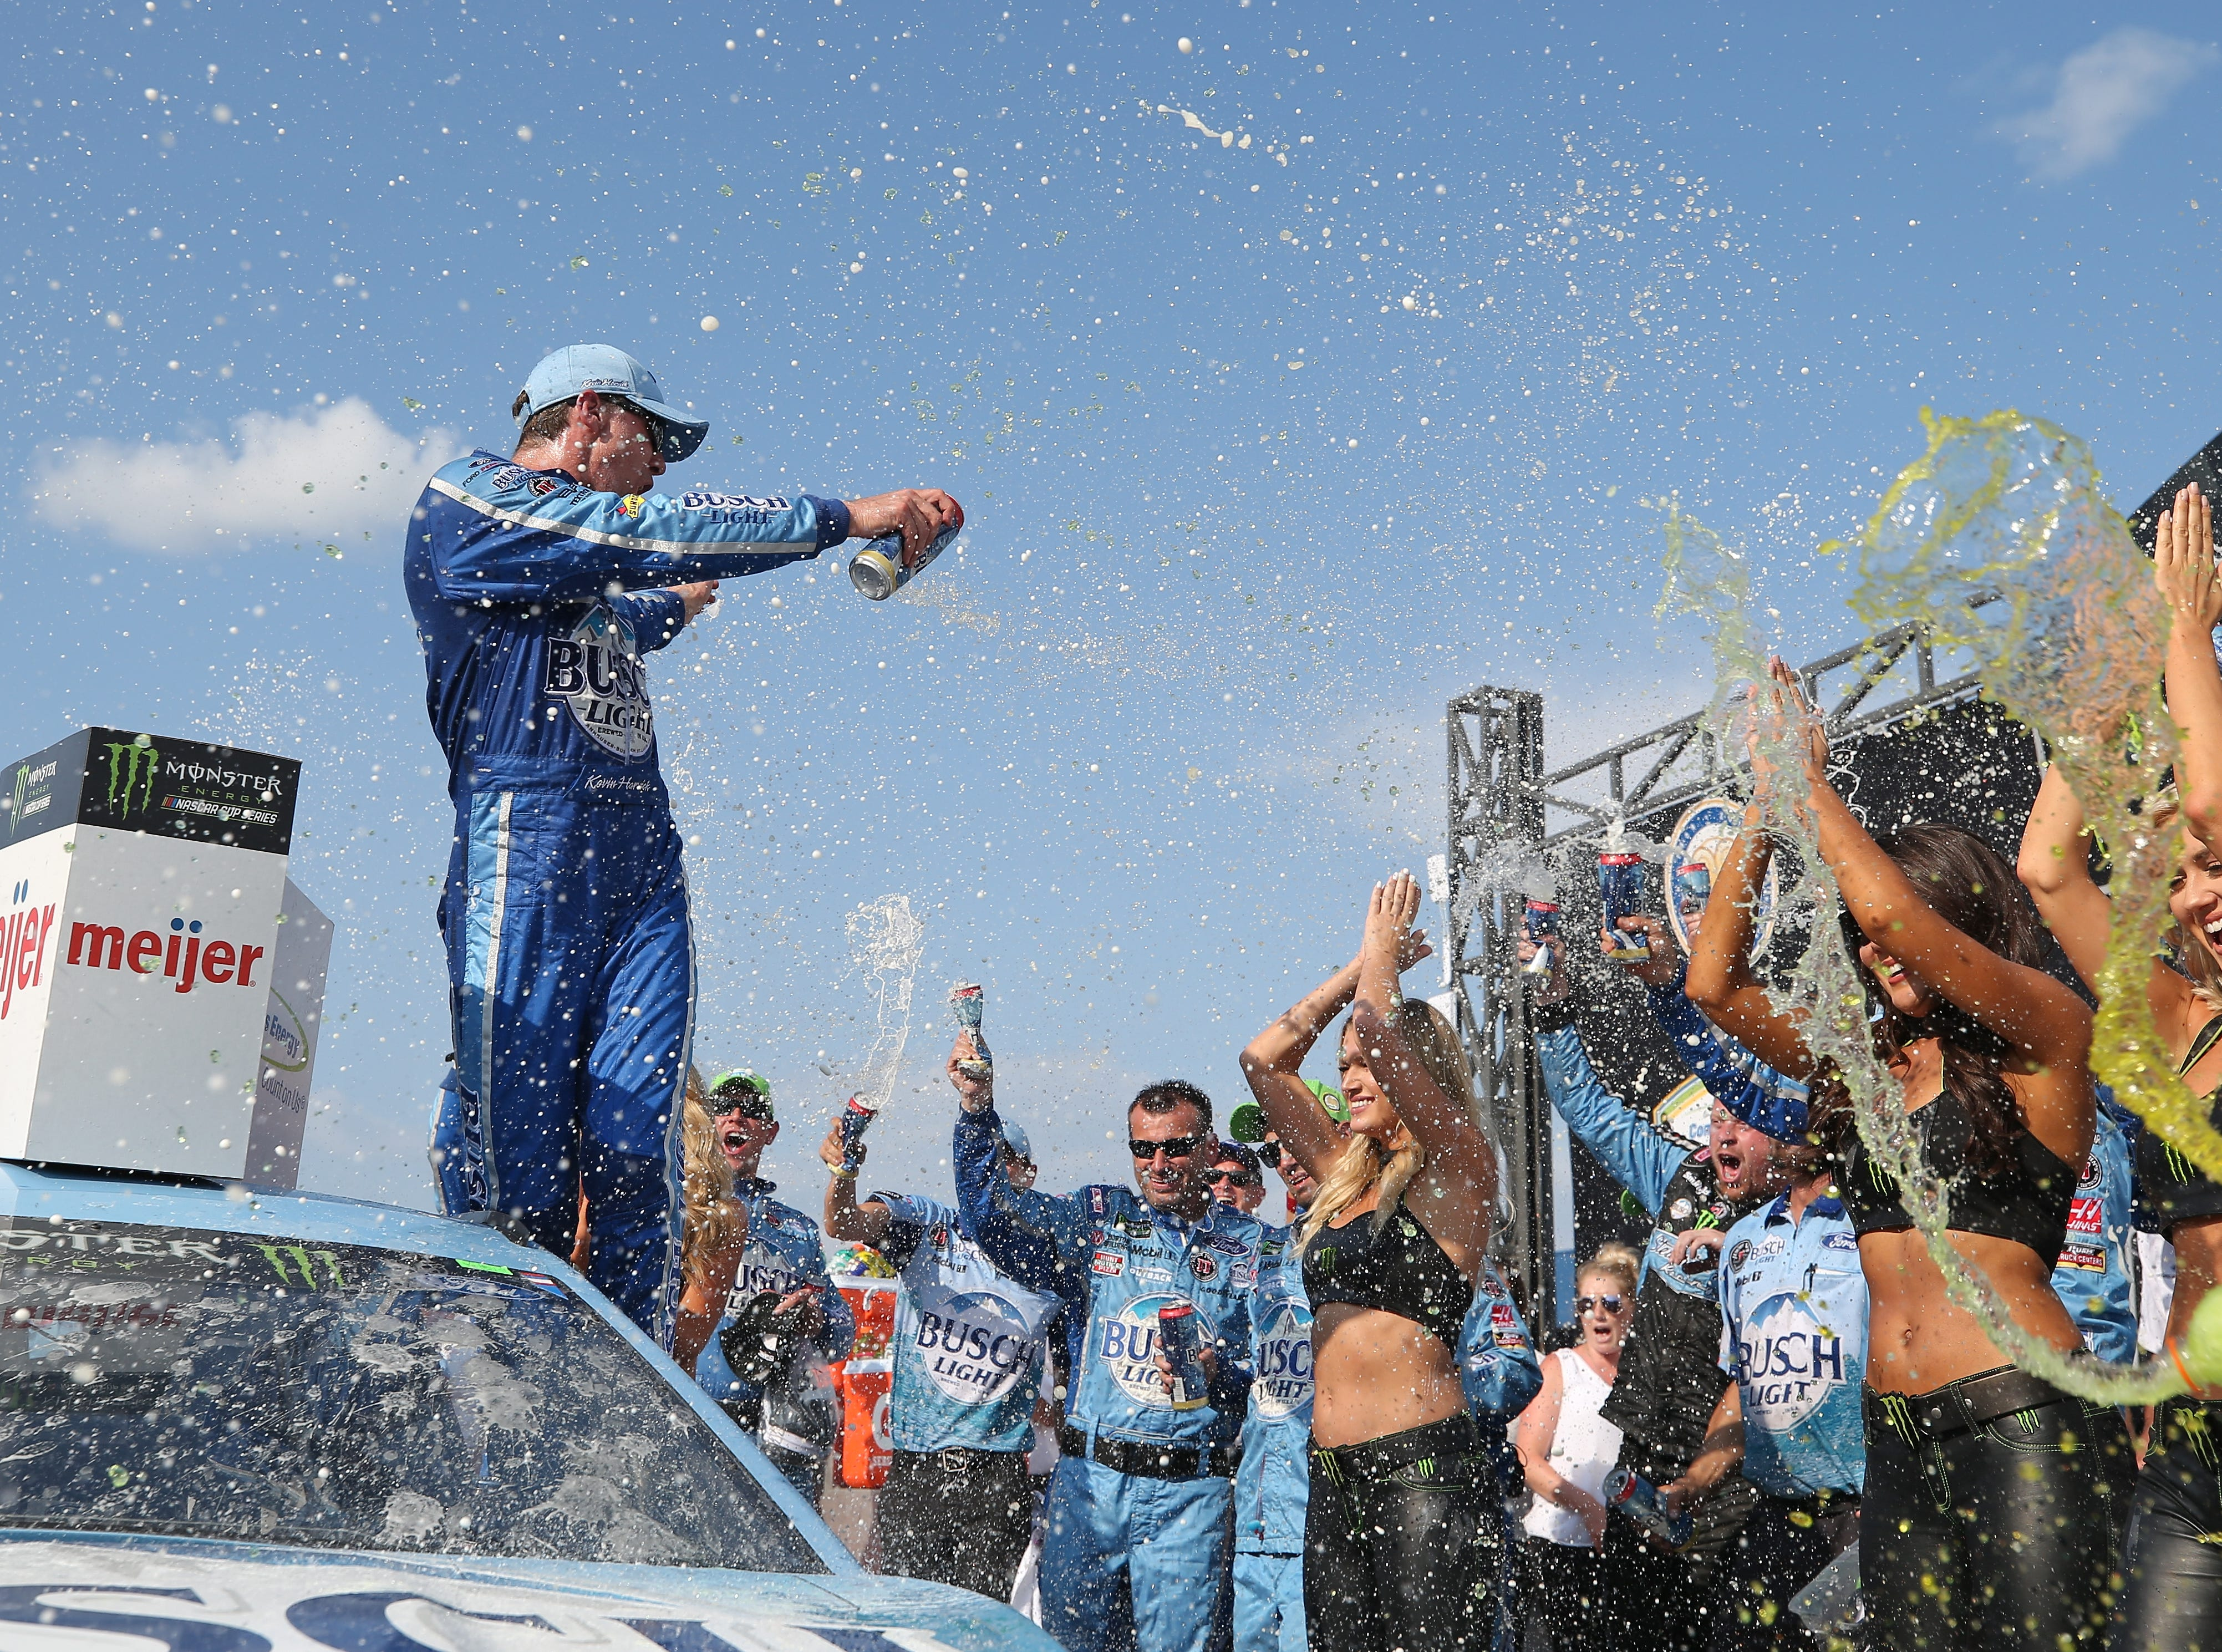 Kevin Harvick, driver of the #4 Busch Light/Mobil 1 Ford, celebrates in Victory Lane after winning the Monster Energy NASCAR Cup Series Consmers Energy 400 at Michigan International Speedway.